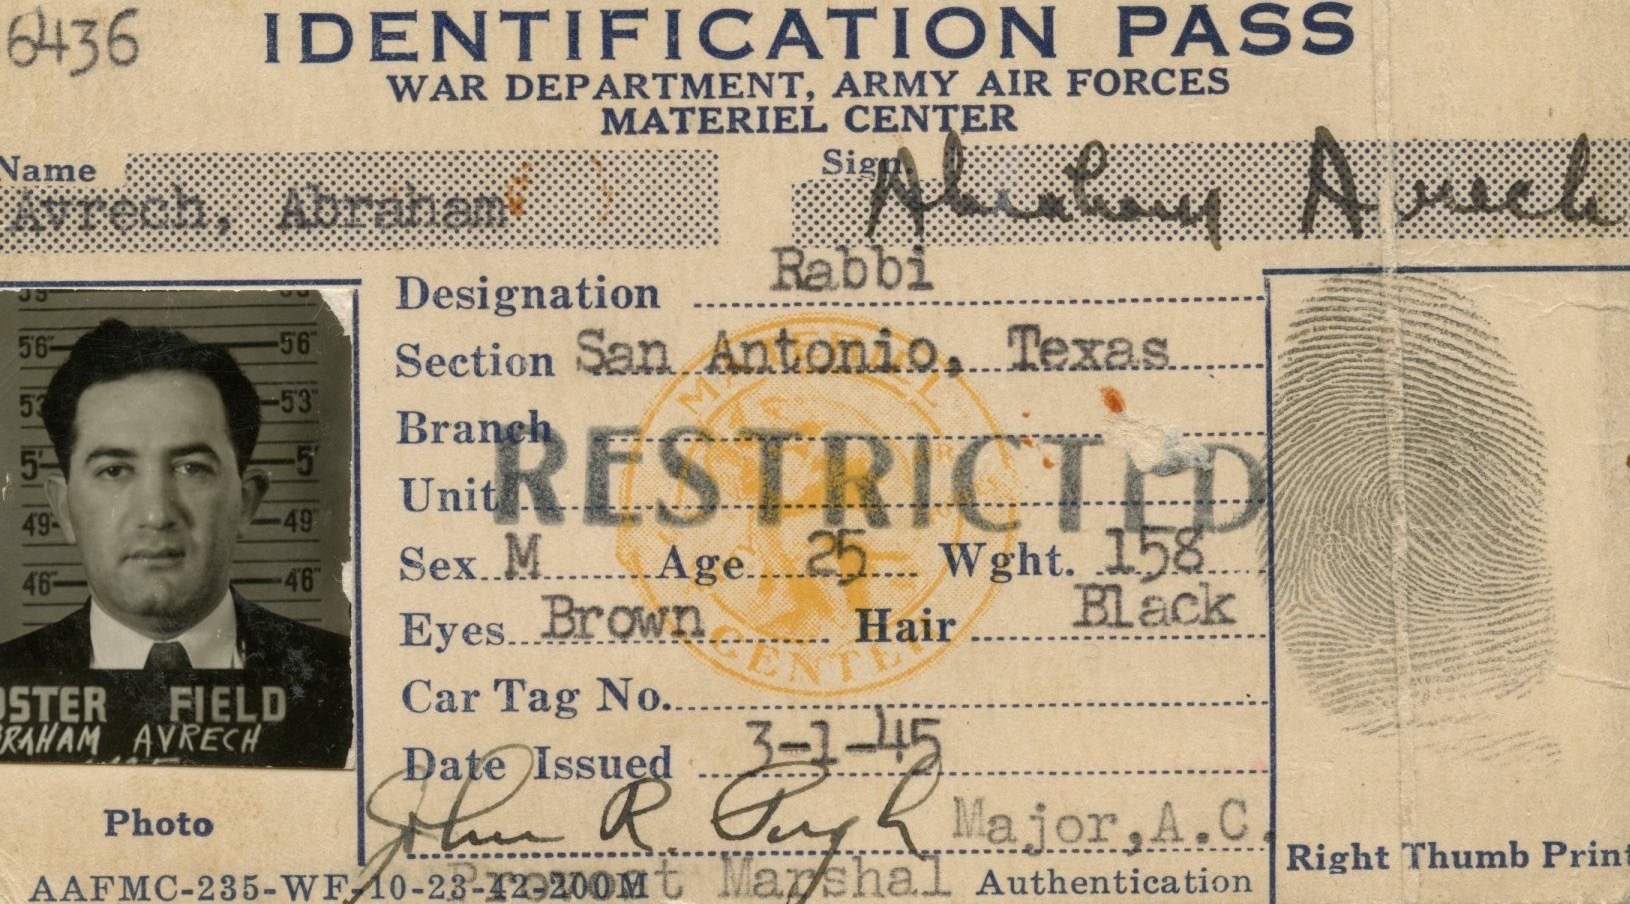 I'm still going through my late father's papers. Recently discovered this ID card.